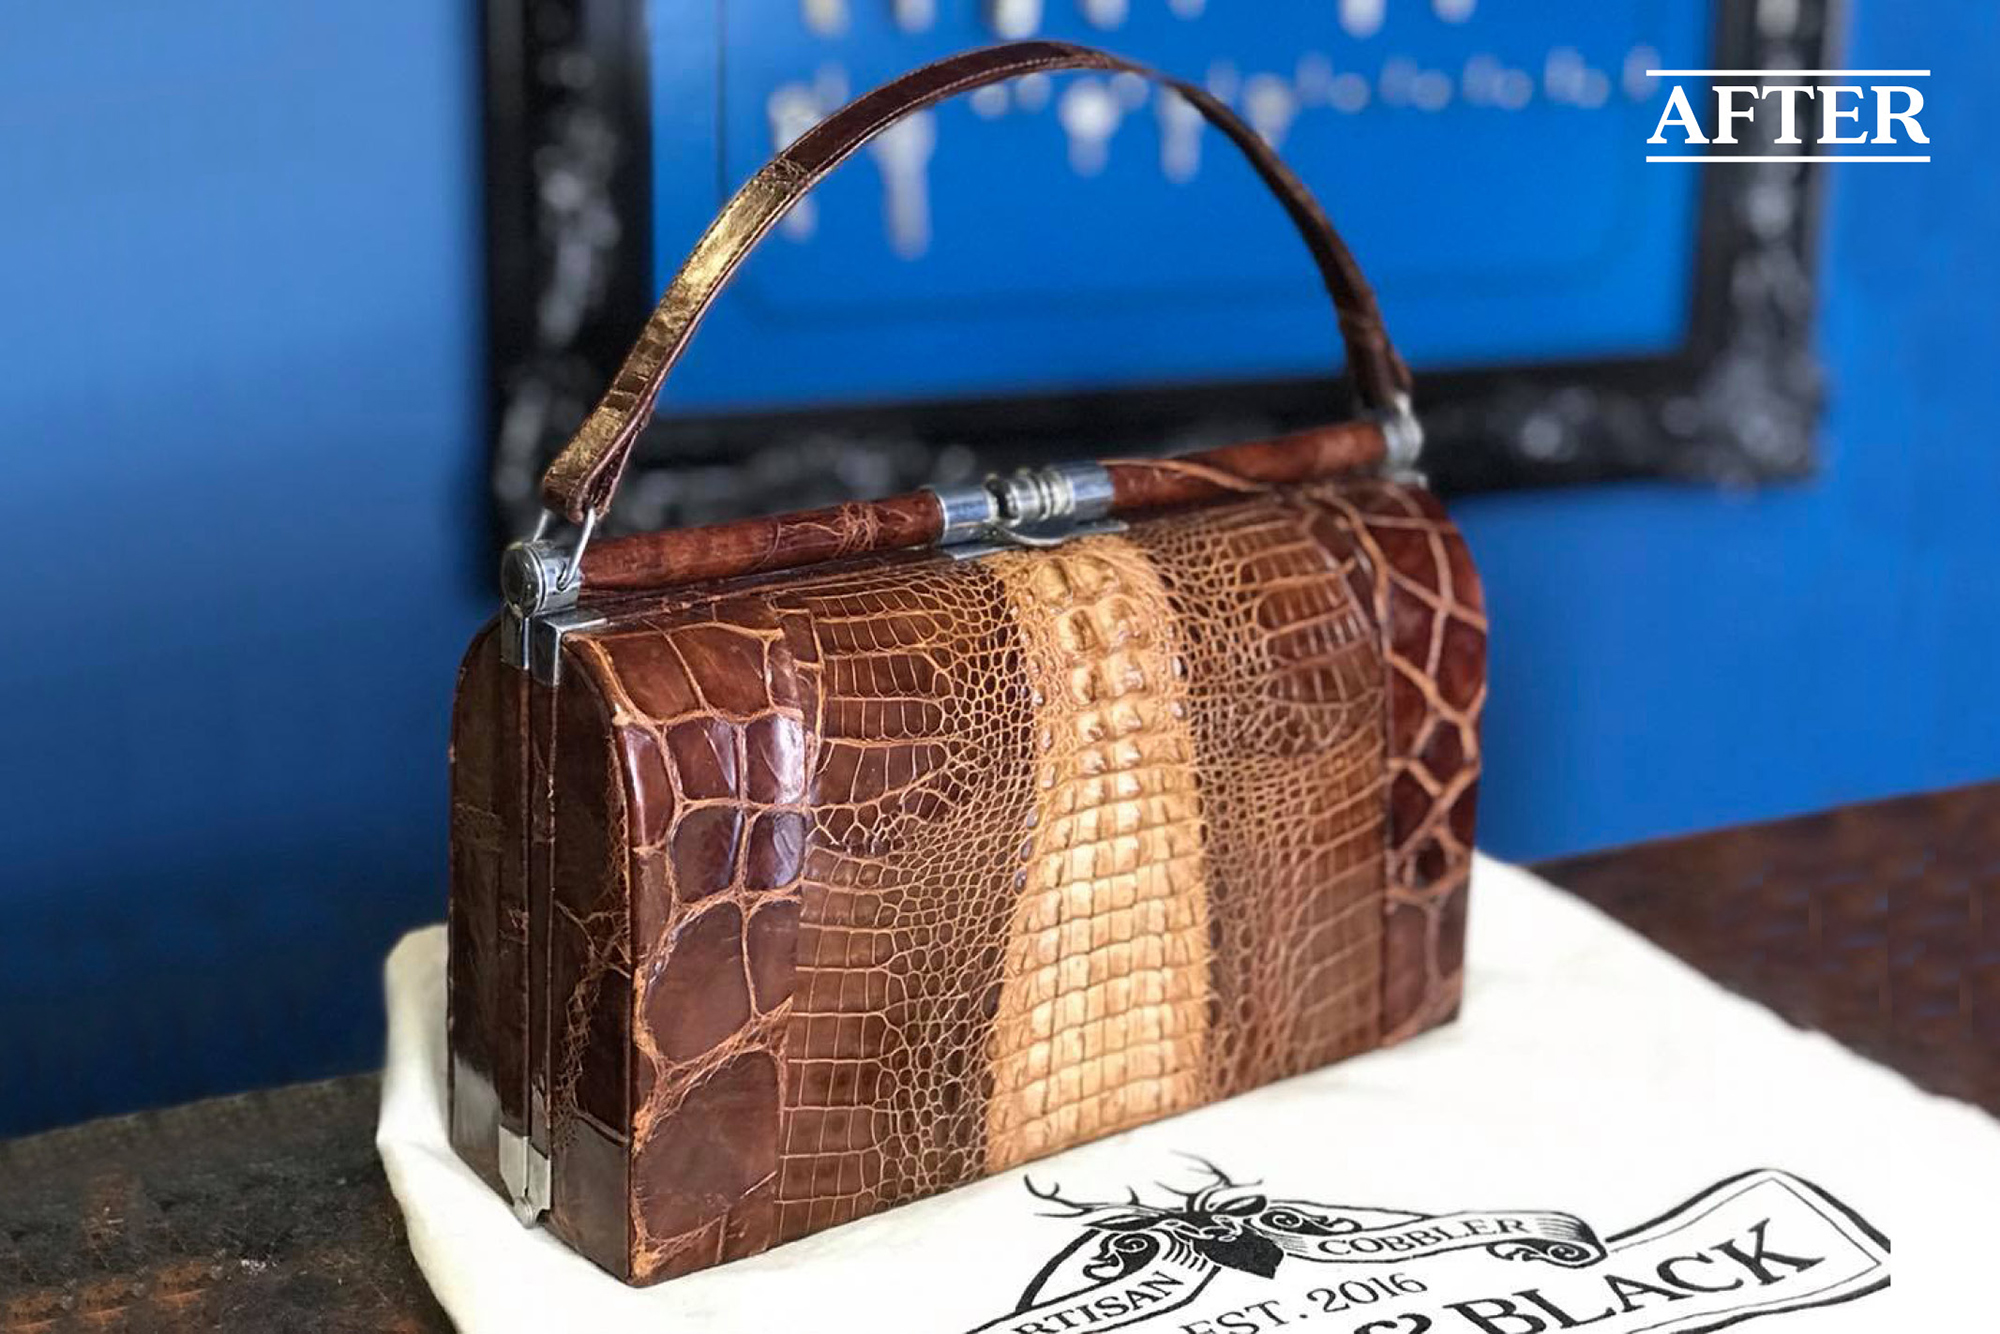 Crocodile vintage handbag restoration